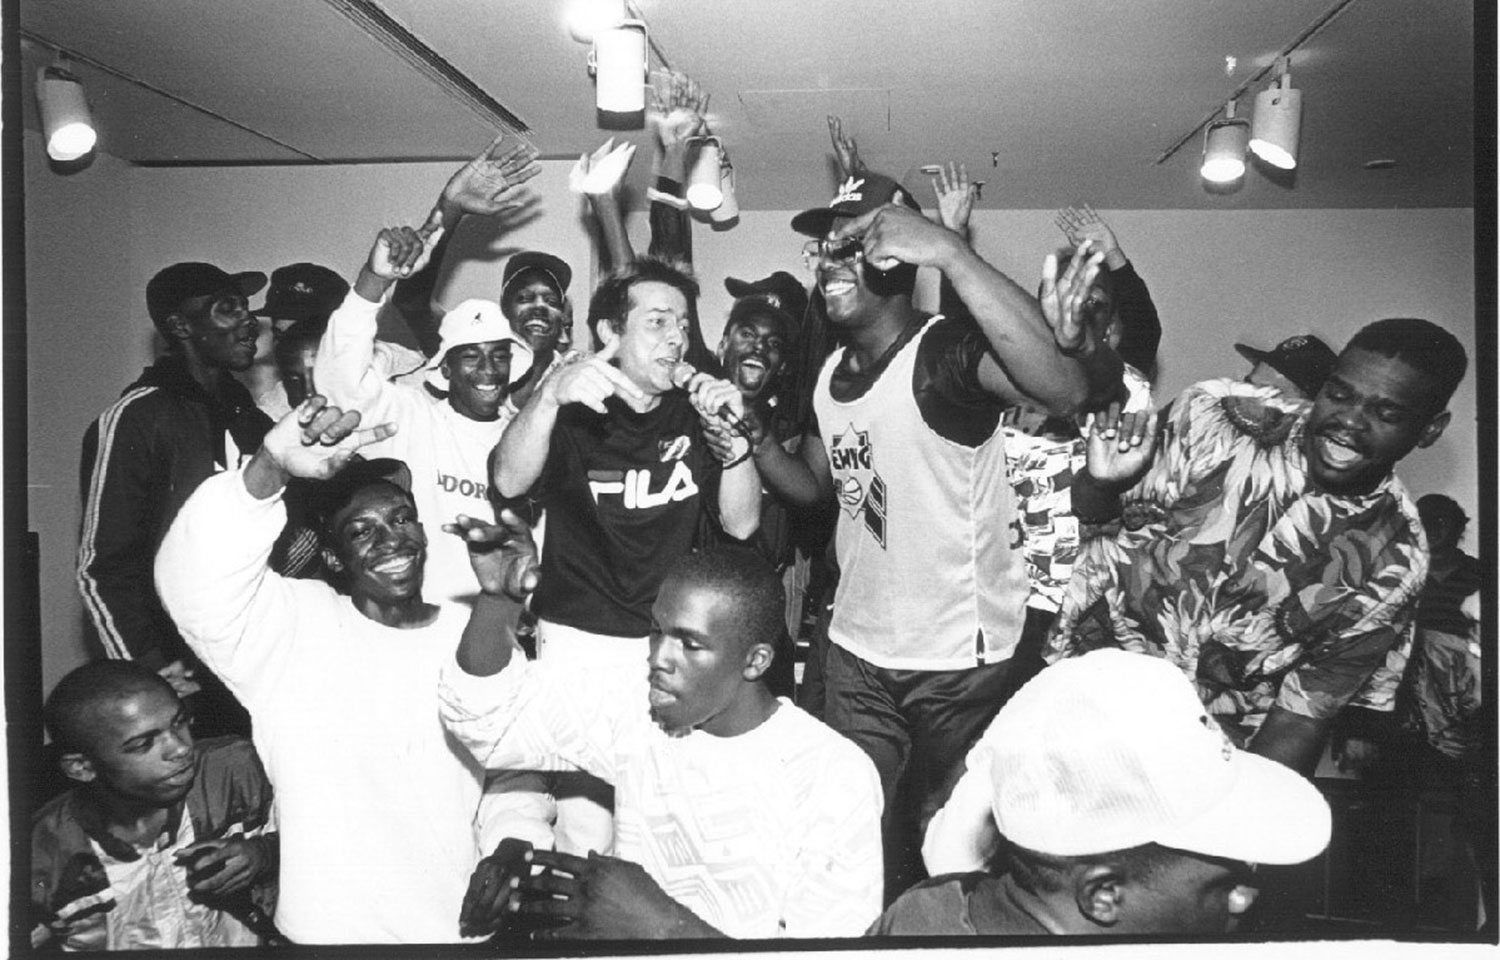 Magnus Johnstone (center) and friends at Boston's Institute of Contemporary Art for a show, c. 1987. (Courtesy Massachusetts Hip-Hop Archive)